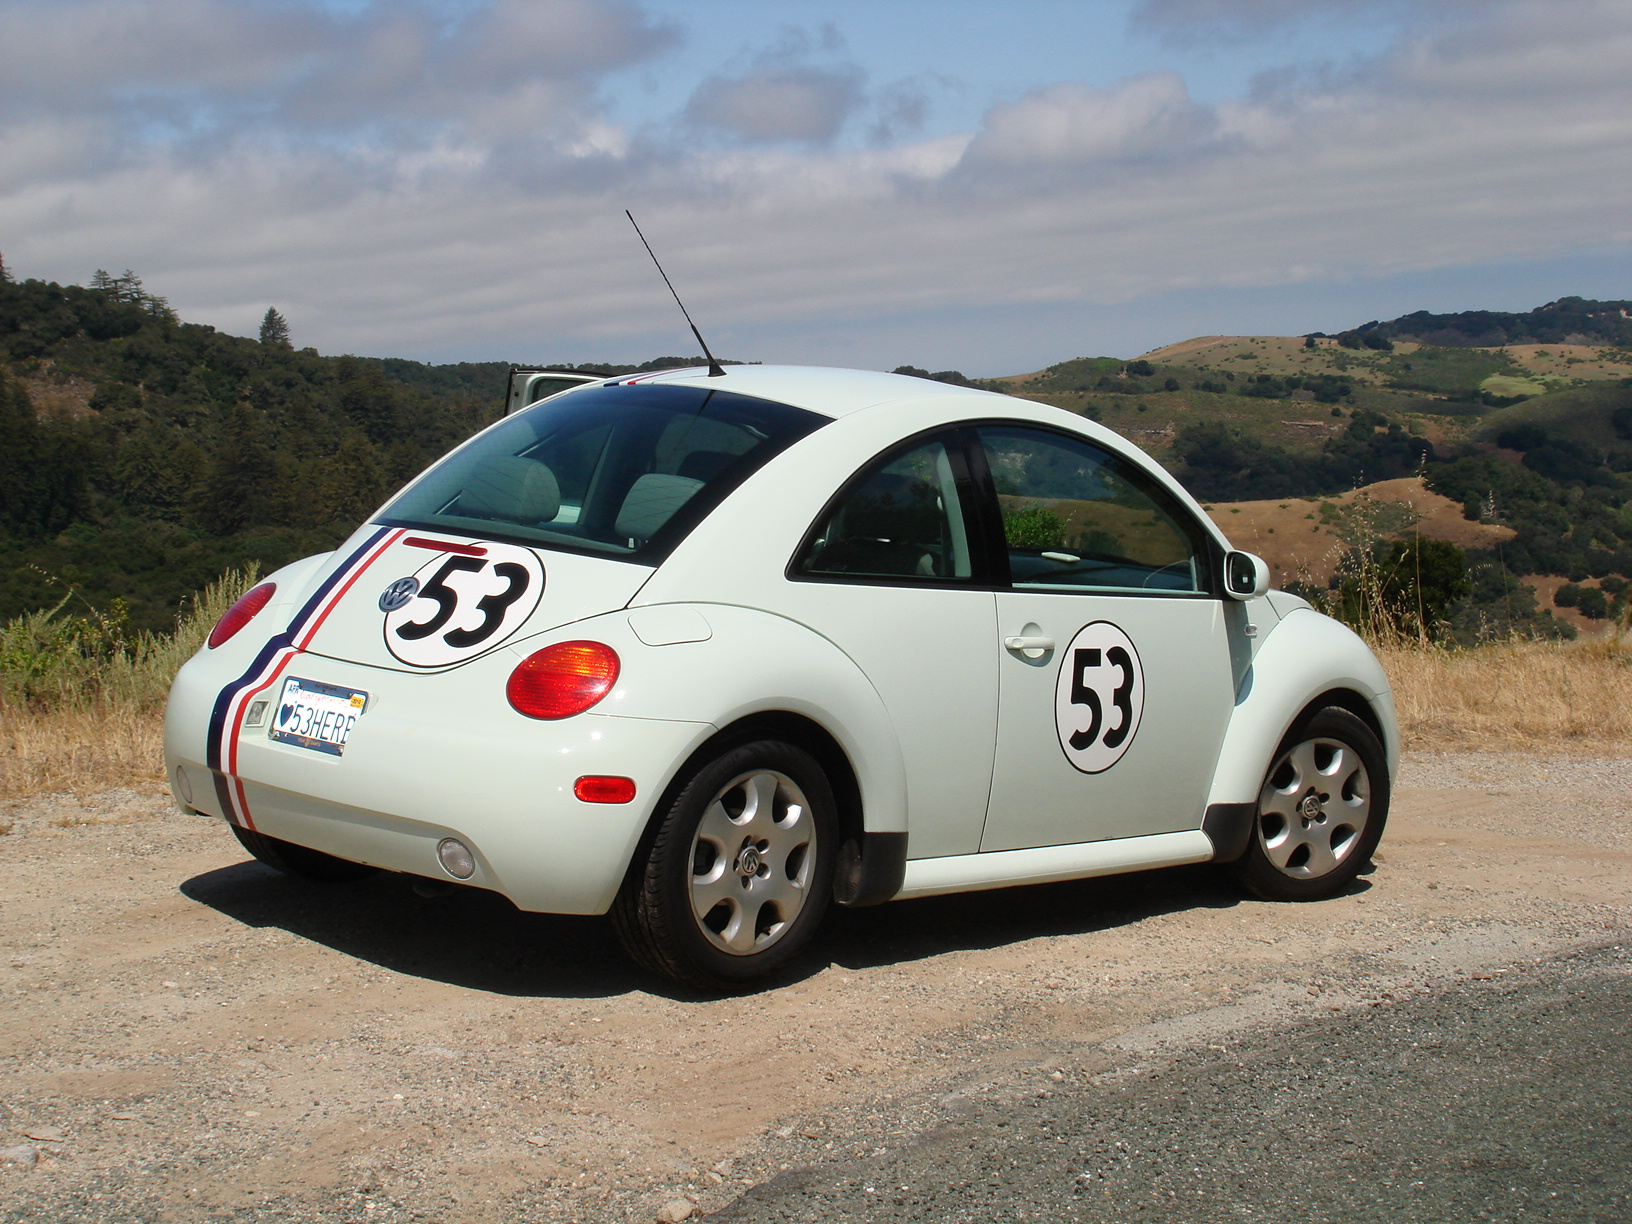 Herbie overlooks the Carmell Valley